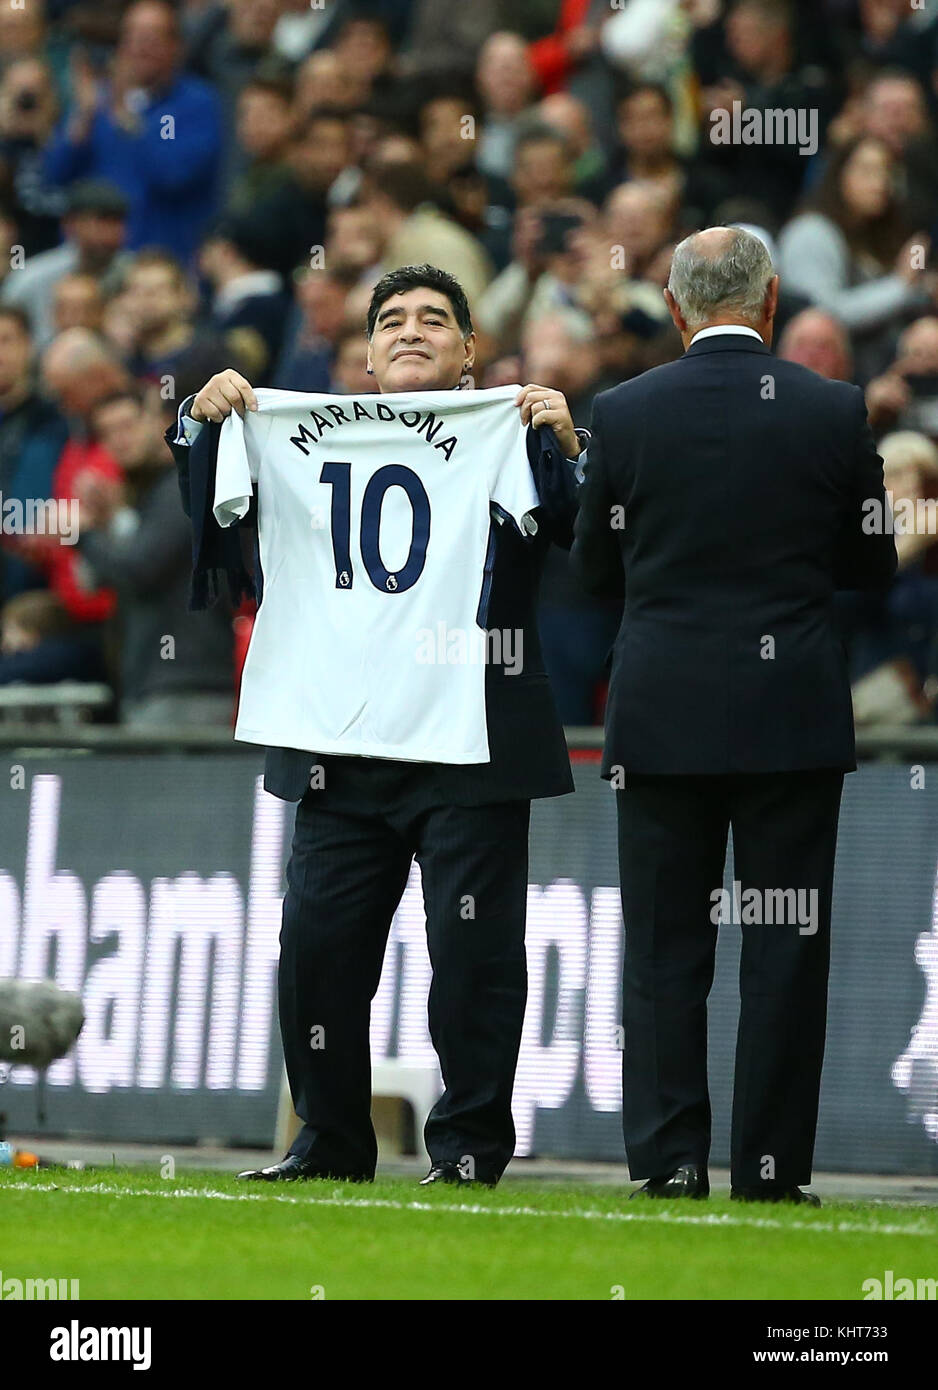 Diego Maradona waves a personalised Spurs shirt  at the Premier League match between Tottenham Hotspur and Liverpool - Stock Image